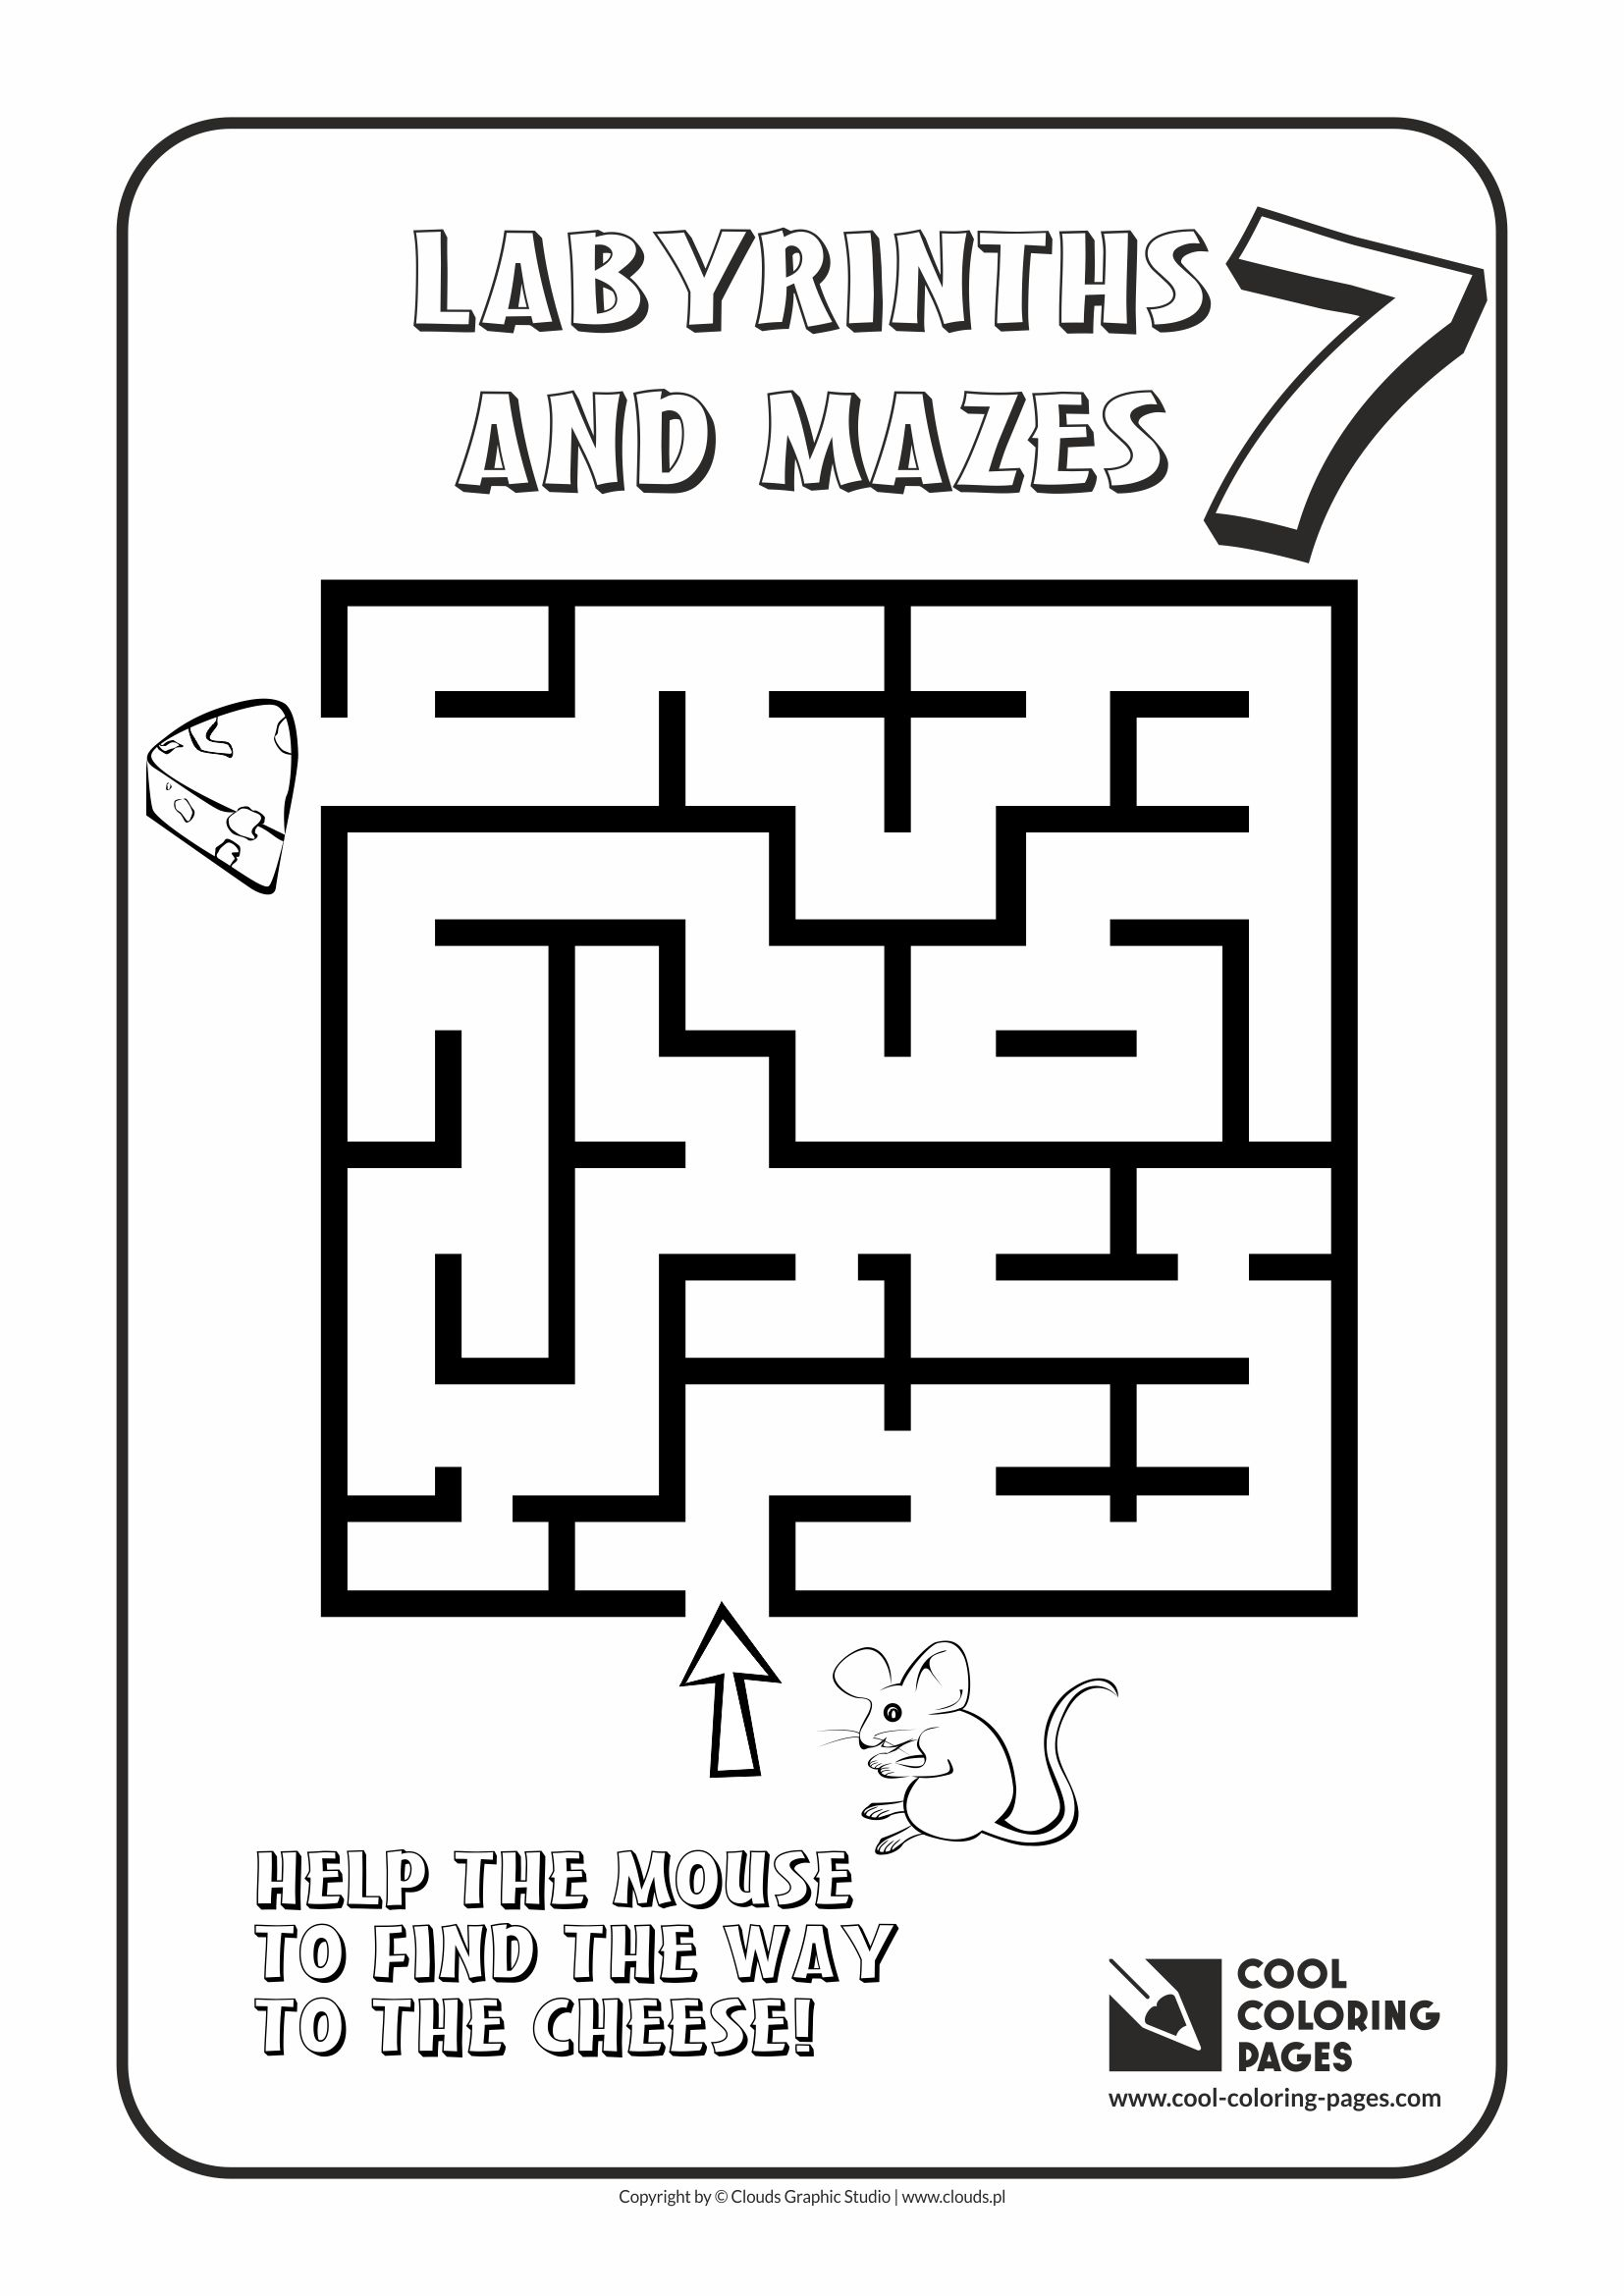 Cool Coloring Pages Labyrinths And Mazes Cool Coloring